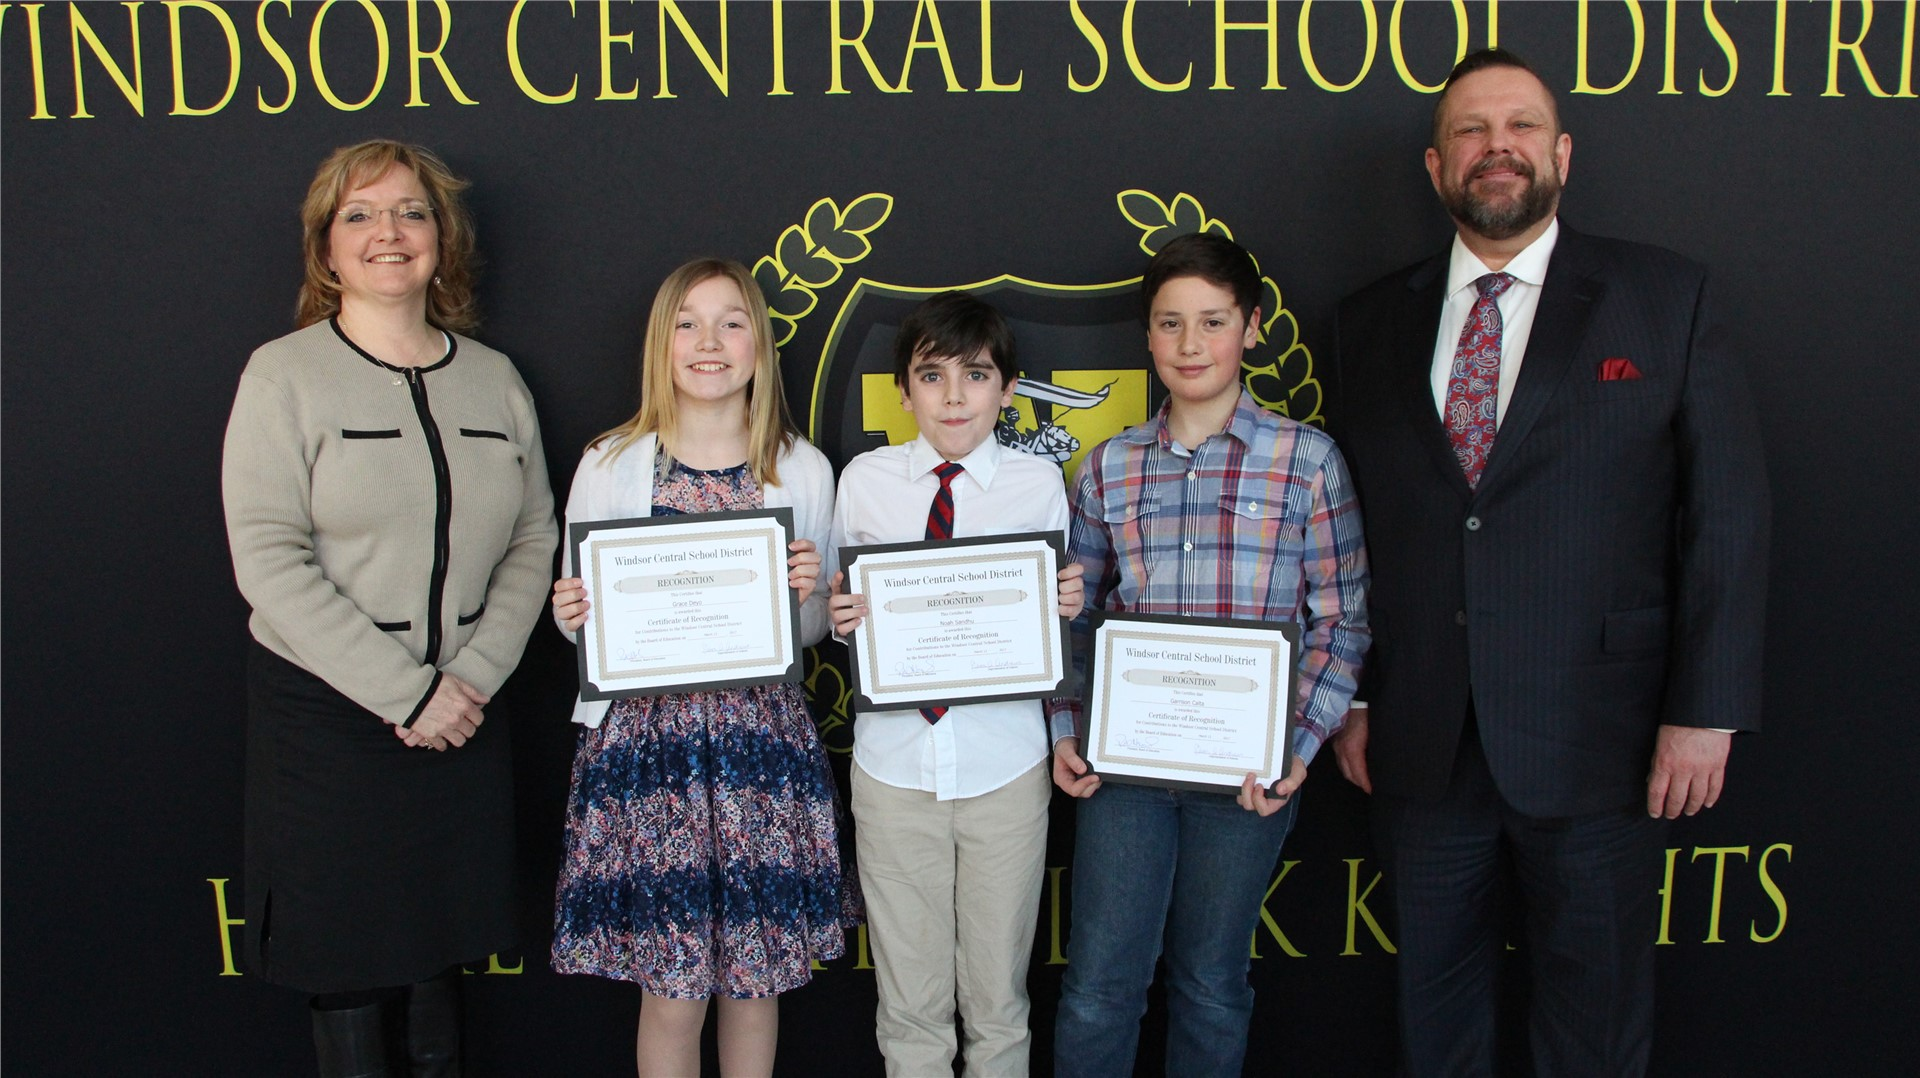 5th-grade students Garrison Calta, Grace Deyo, Sophia Chen and Noah Sandhu